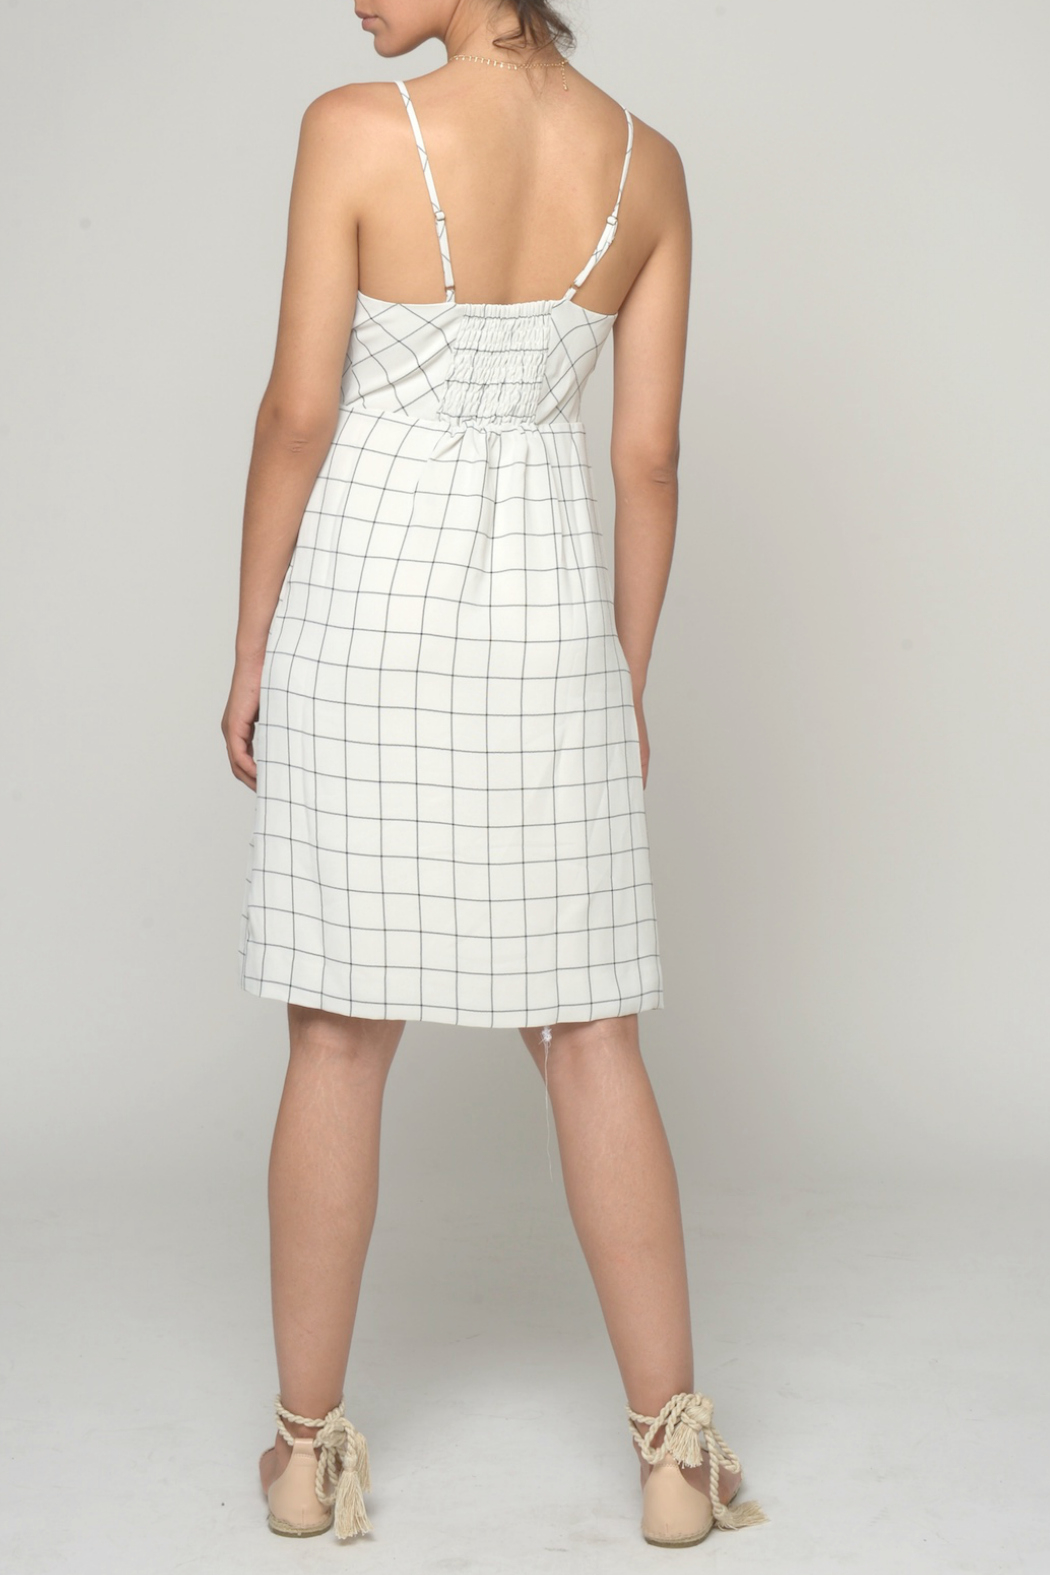 CISTAR Assymetric Button Check Print Dress - Front Full Image